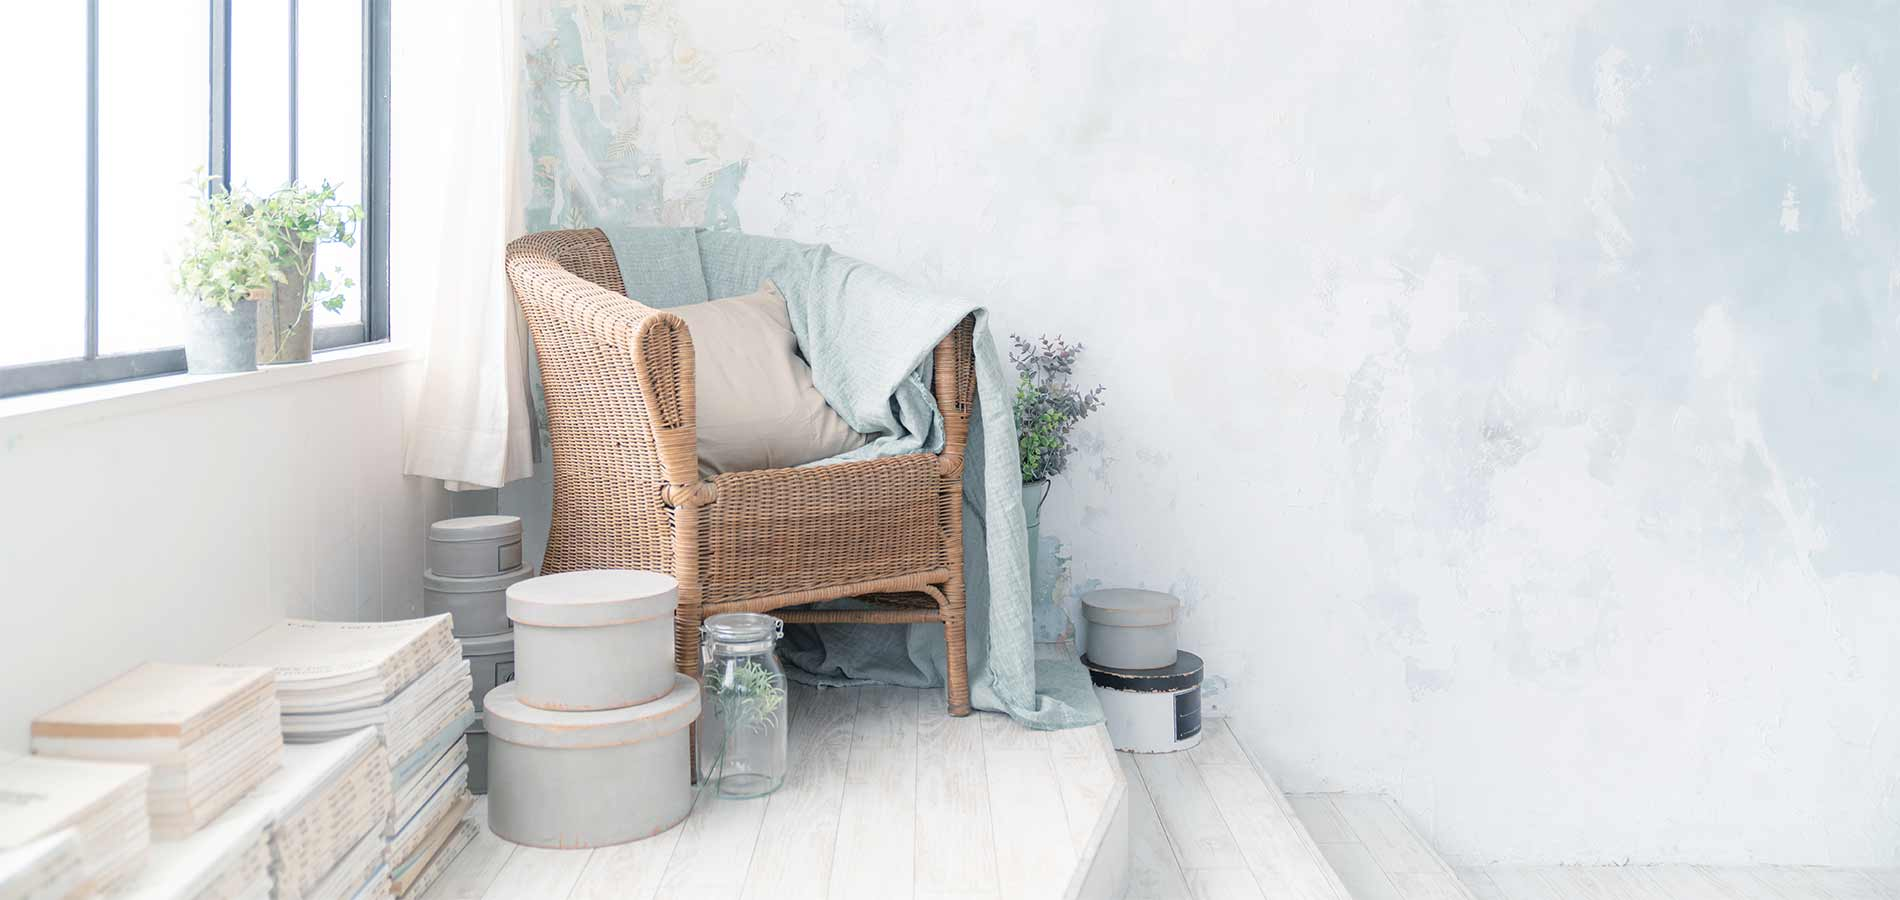 The benefits of a tidy living space